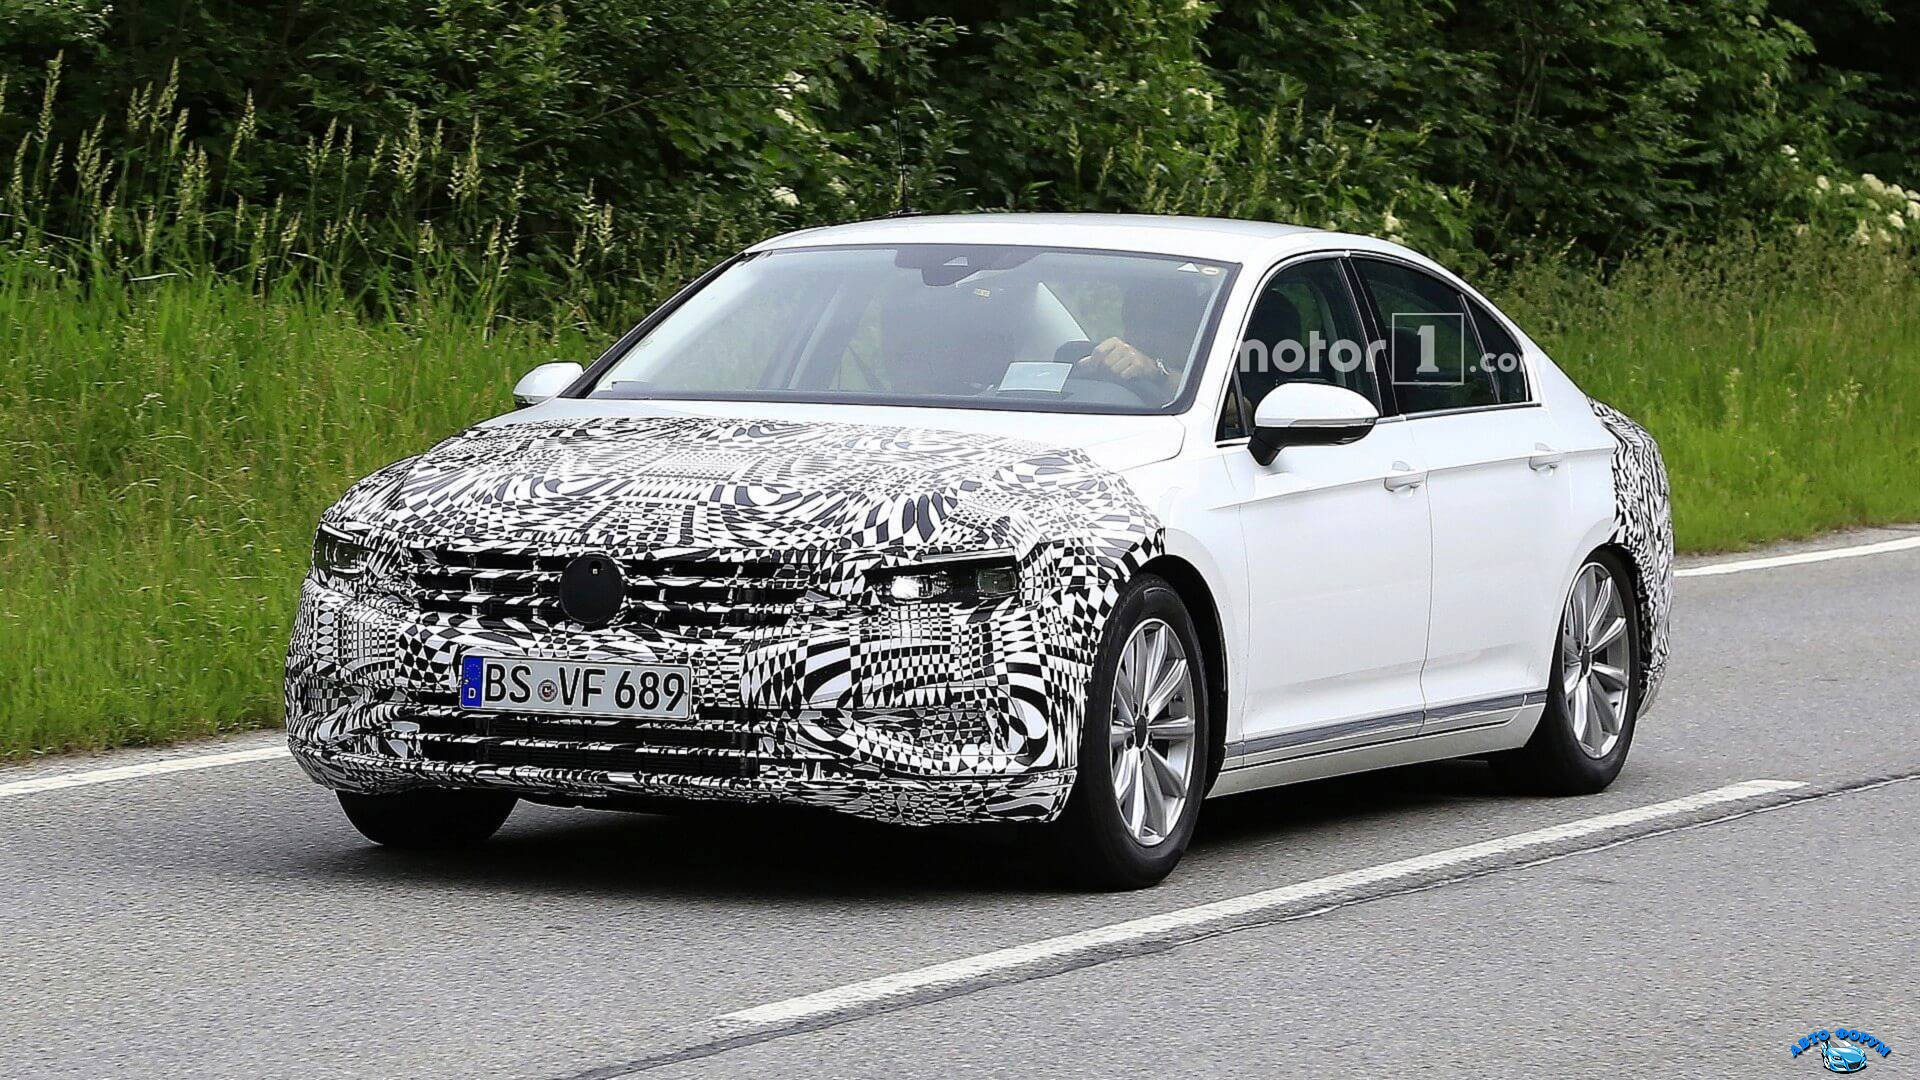 2019-vw-passat-euro-spec-facelift-spy-photo.jpg